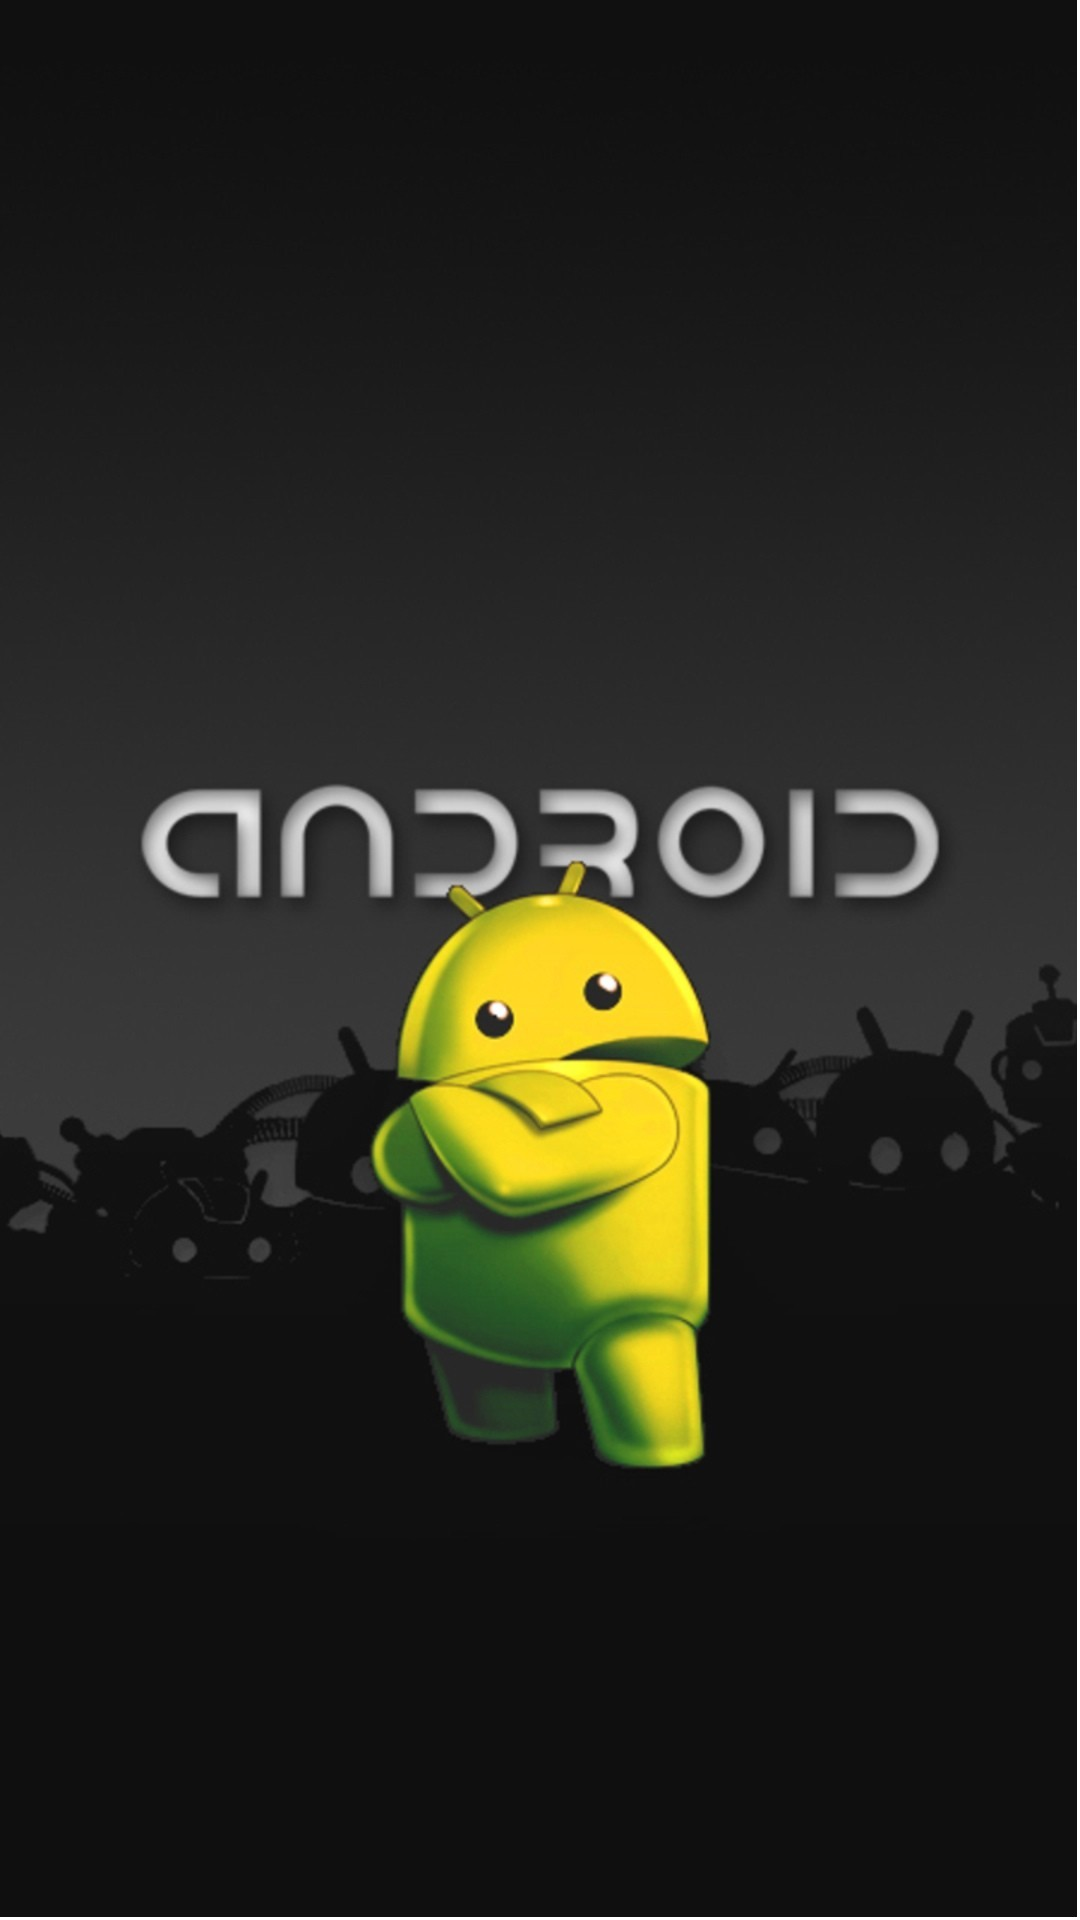 Android htc one wallpaper 1080x1920 - Best htc one wallpapers